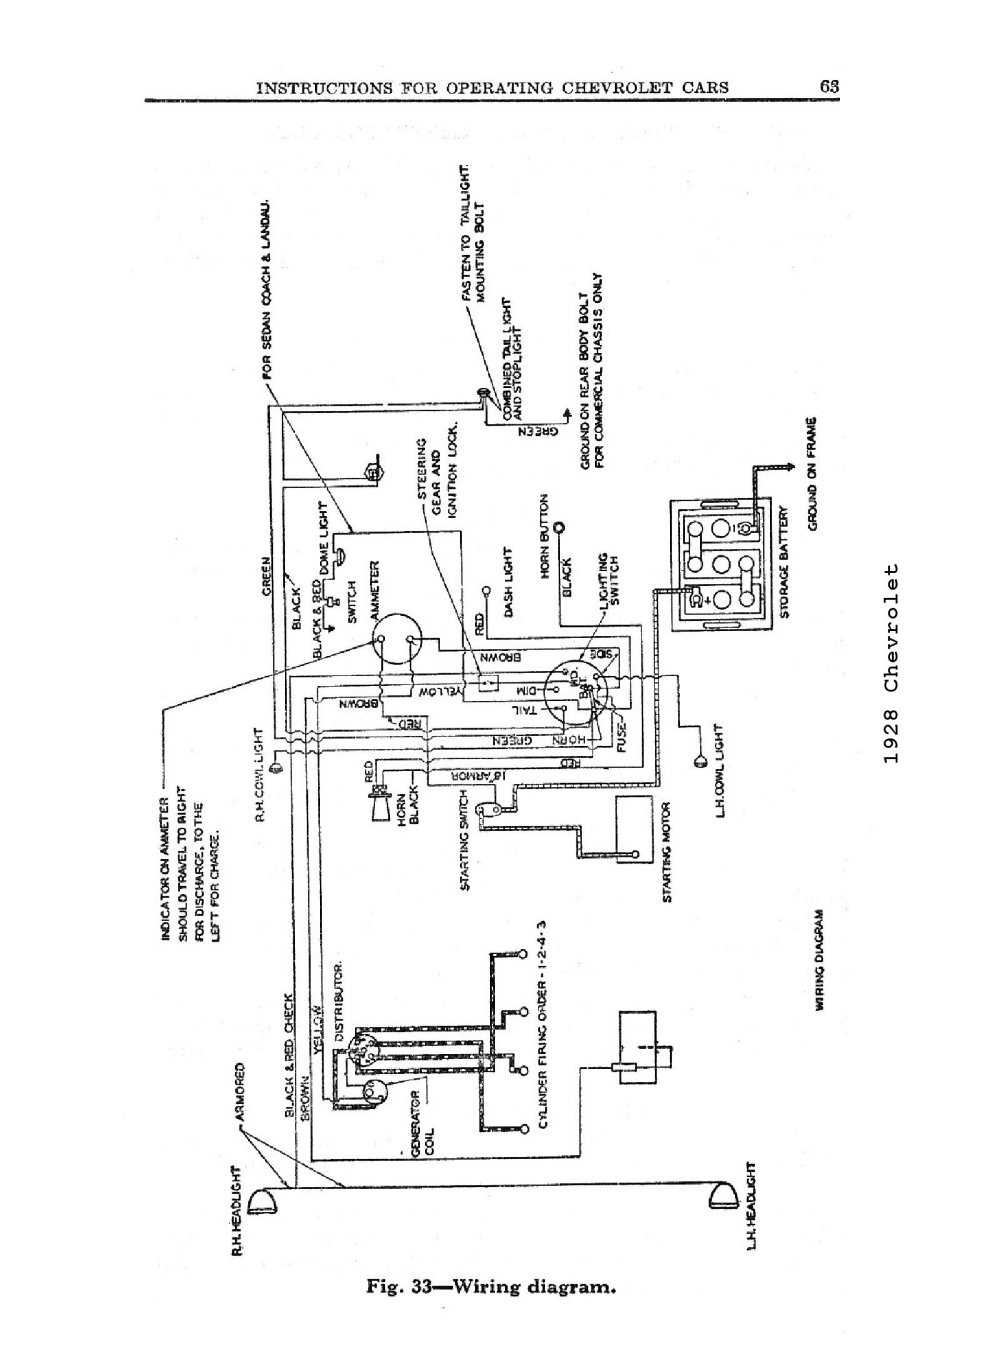 medium resolution of 1954 ford steering column wiring diagrams wiring diagrams scematic rh 15 jessicadonath de 1991 chevy steering